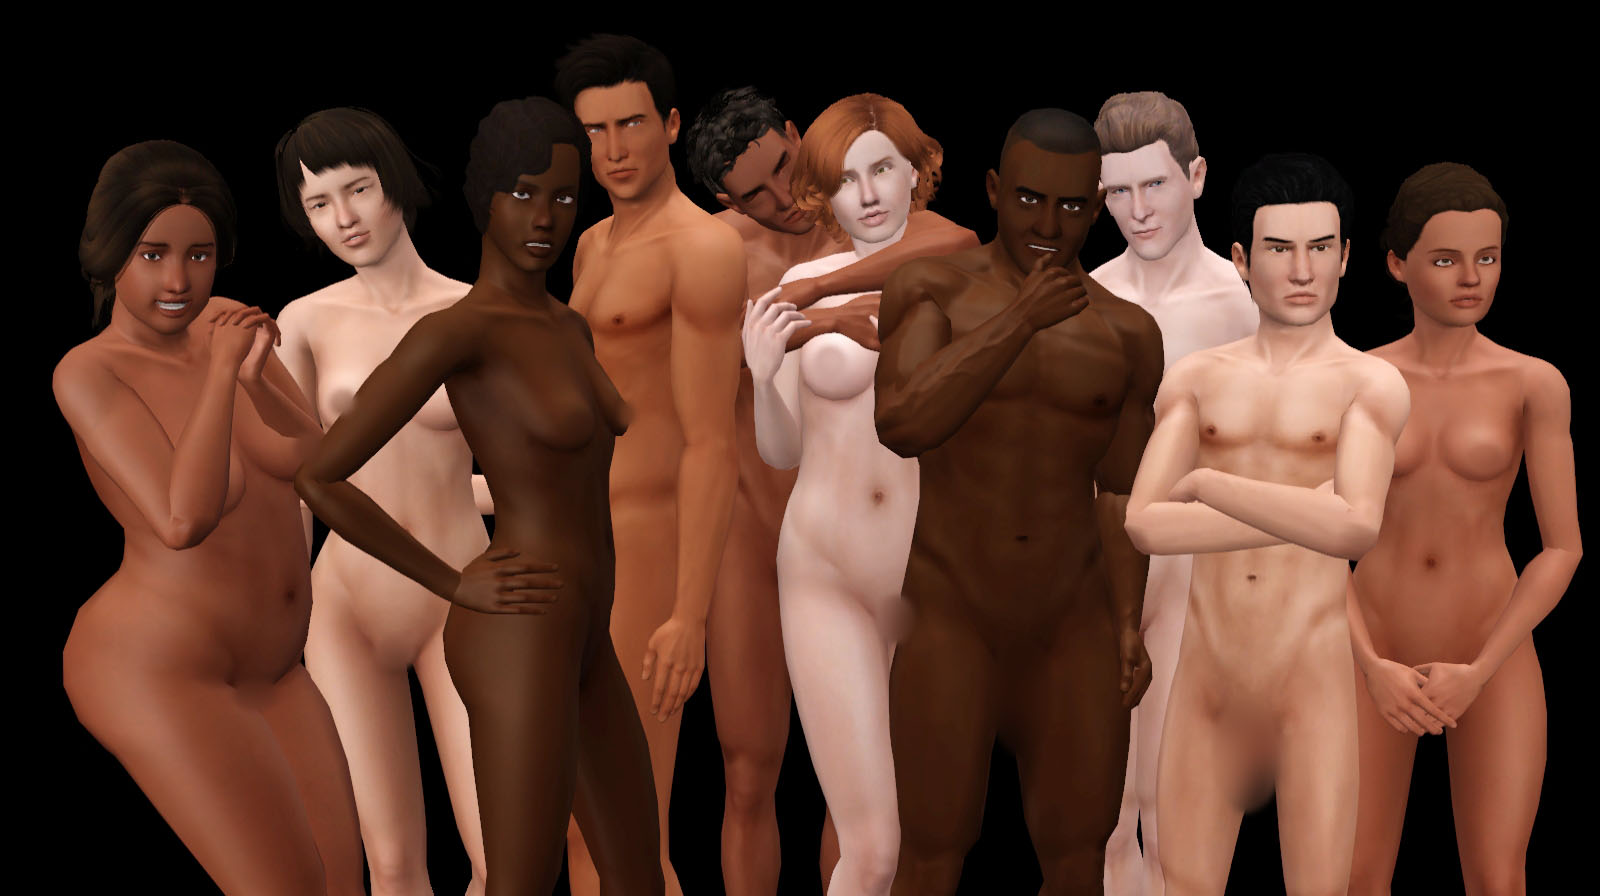 Free sex mods for sims erotica movie